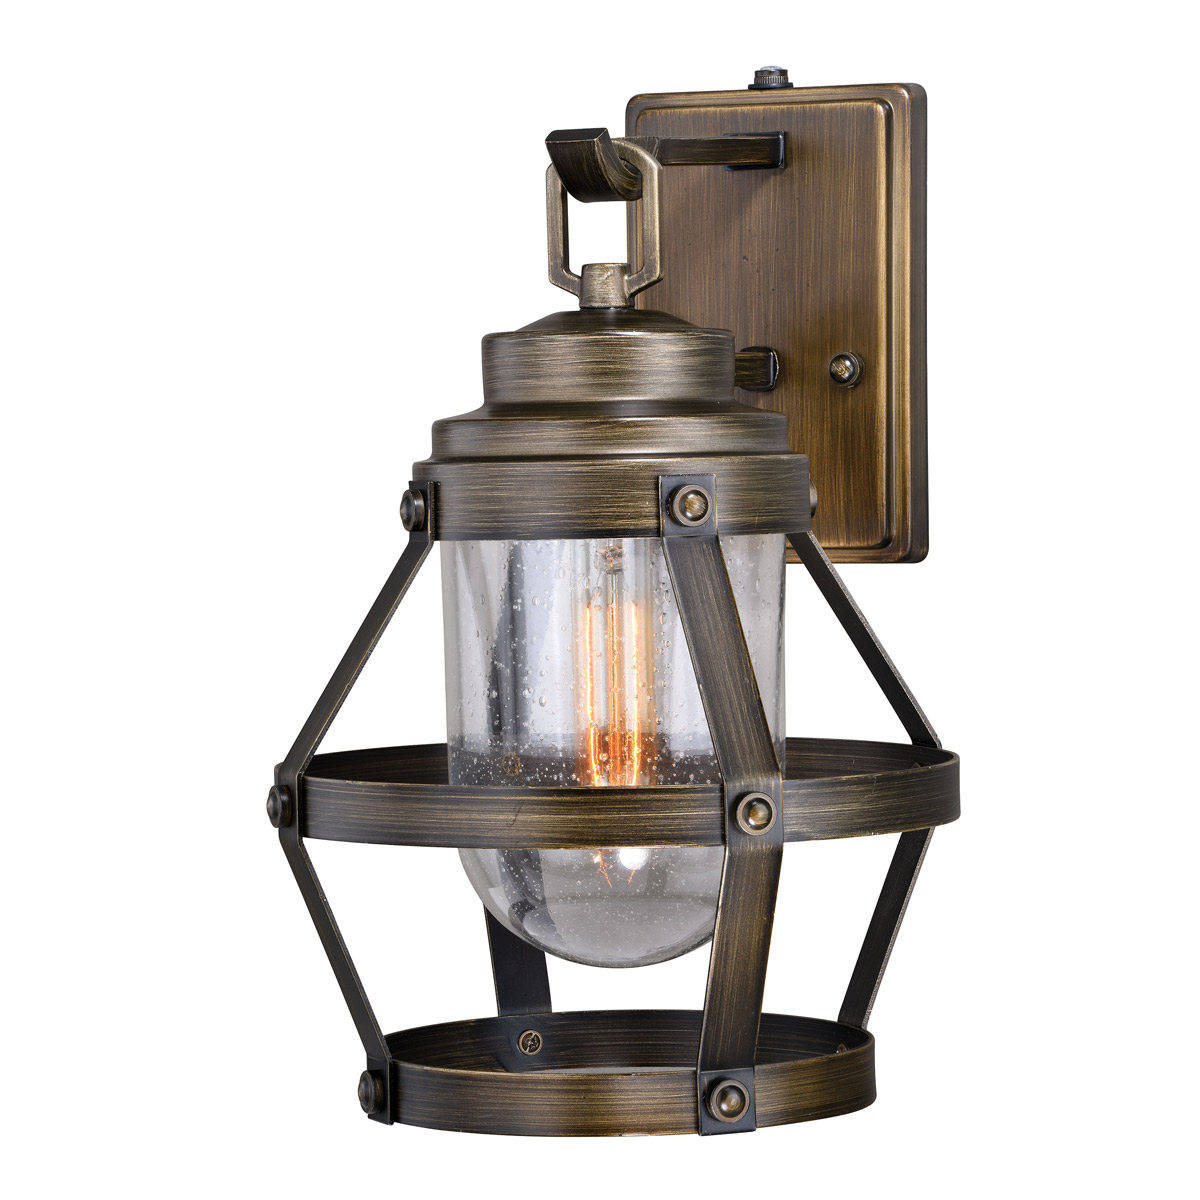 Frontier Lantern Wall Sconce - Small